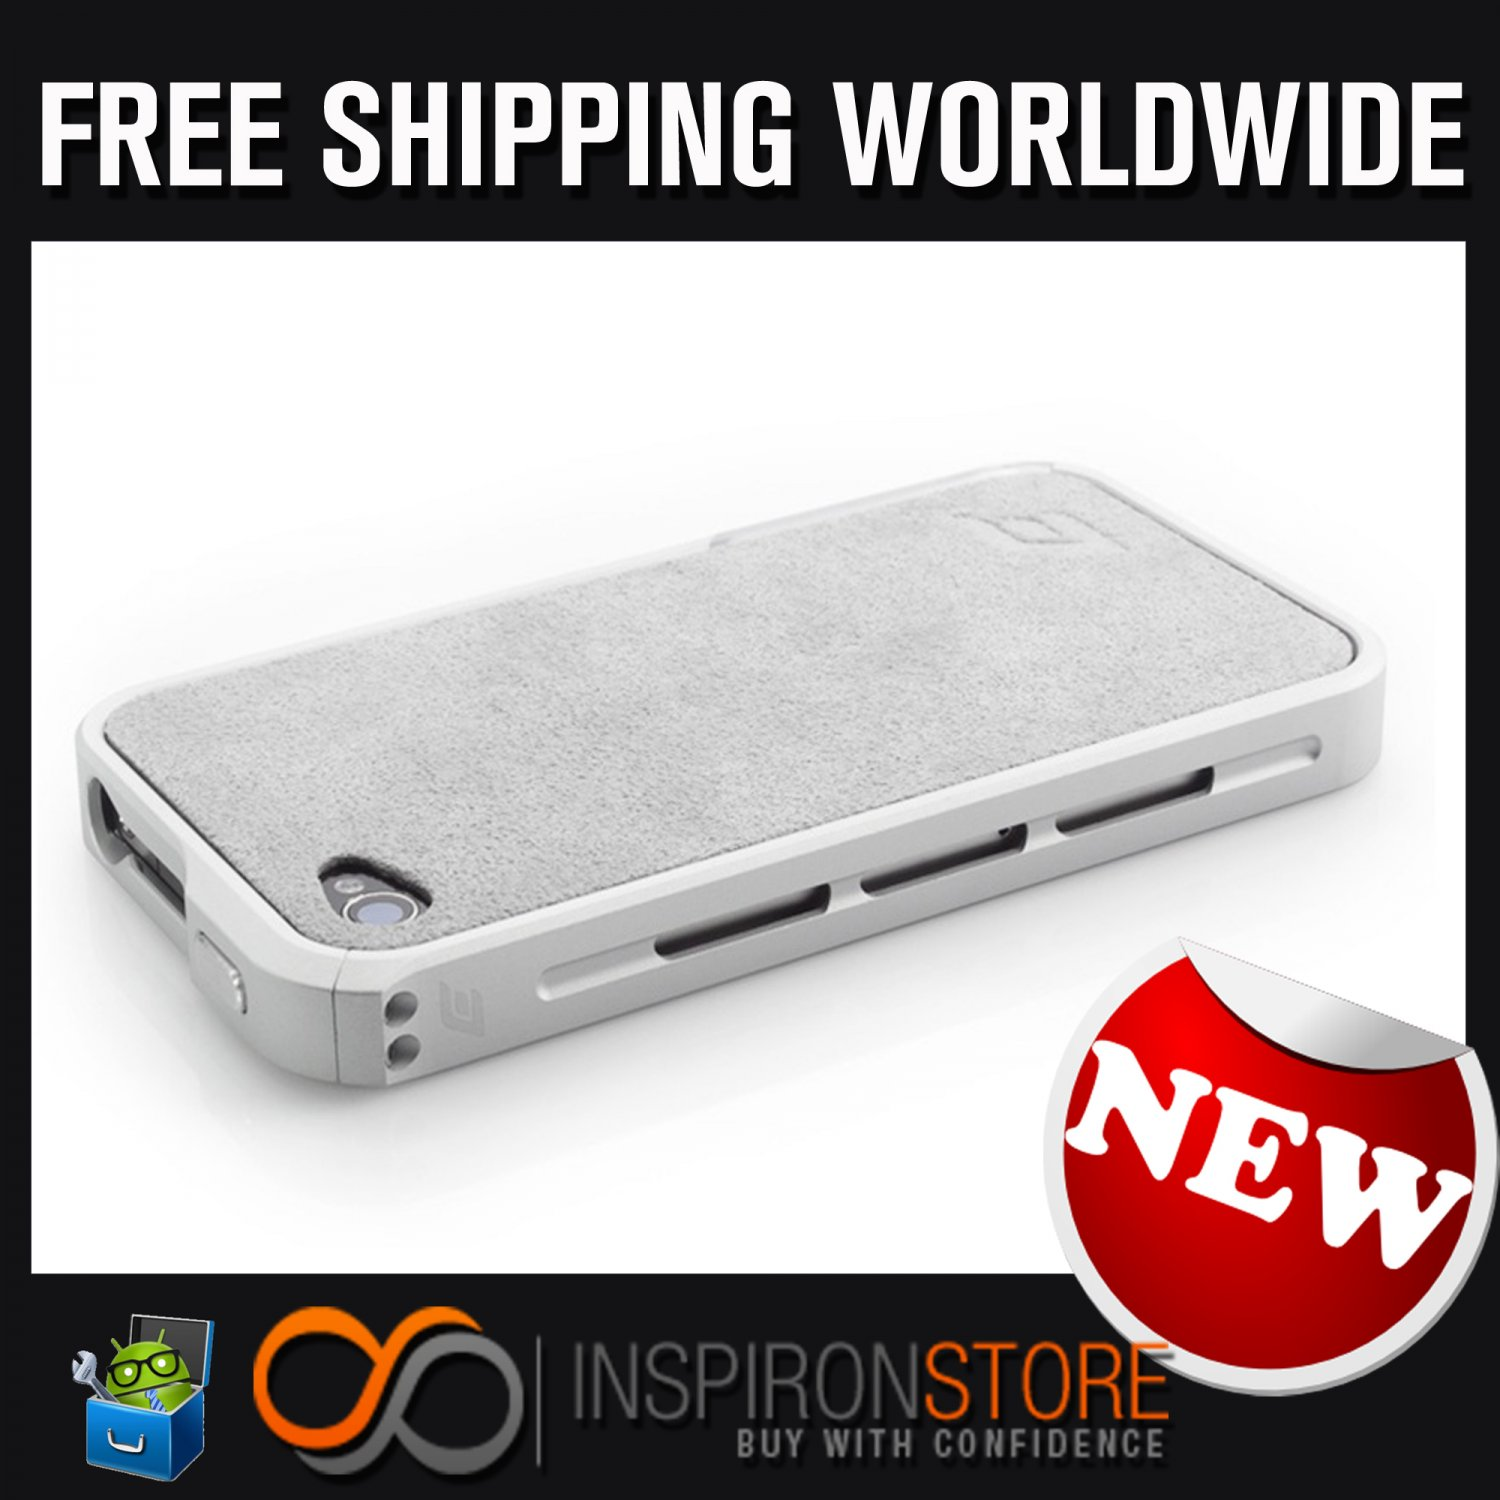 New INSPIRON Element Case Vapor Pro Chroma Silver Edition For Iphone 4/4s Free Shipping